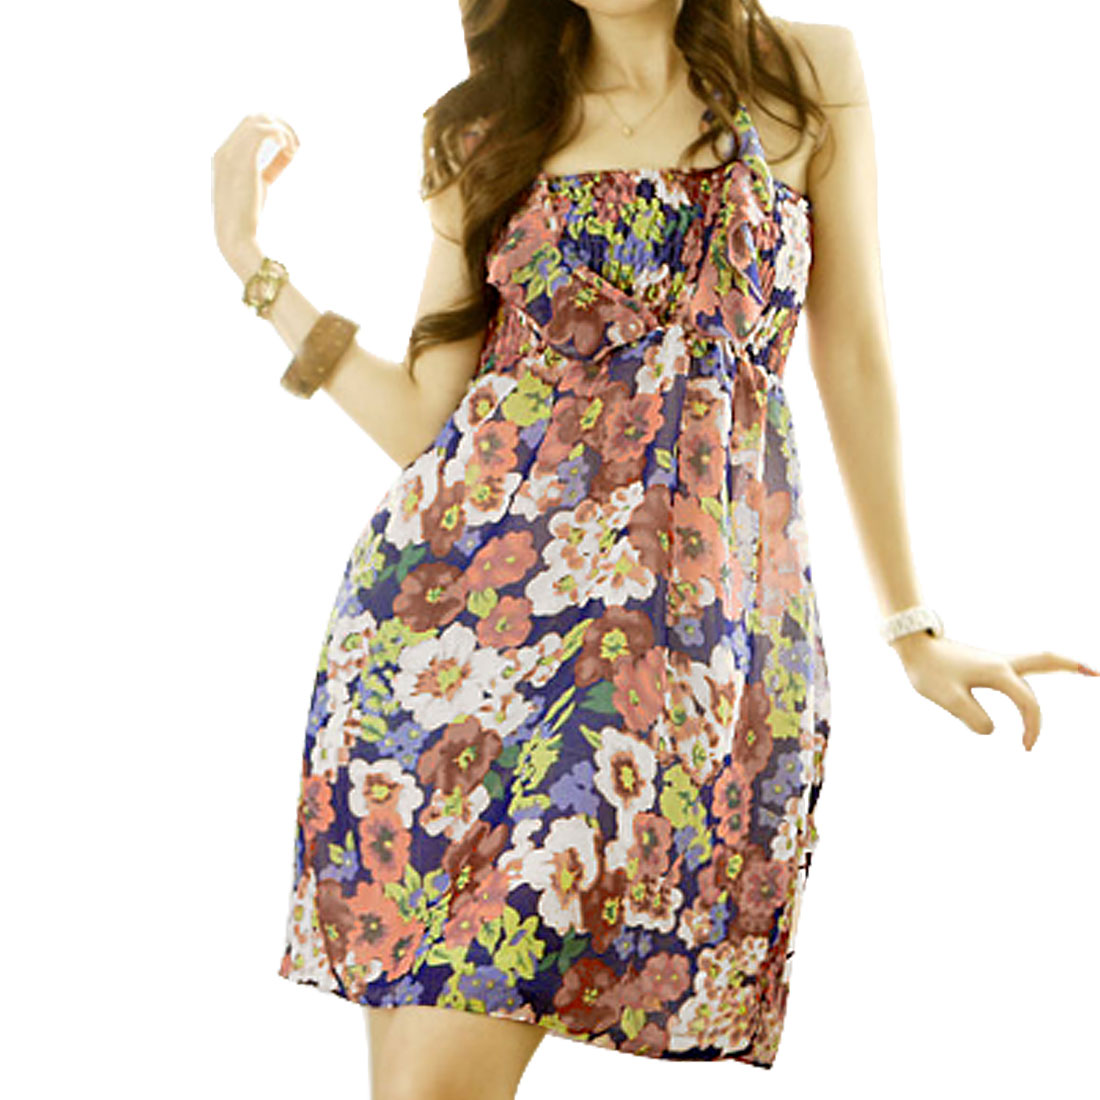 Ladies Ruffle Bust Allover Floral Dress Colorful XS